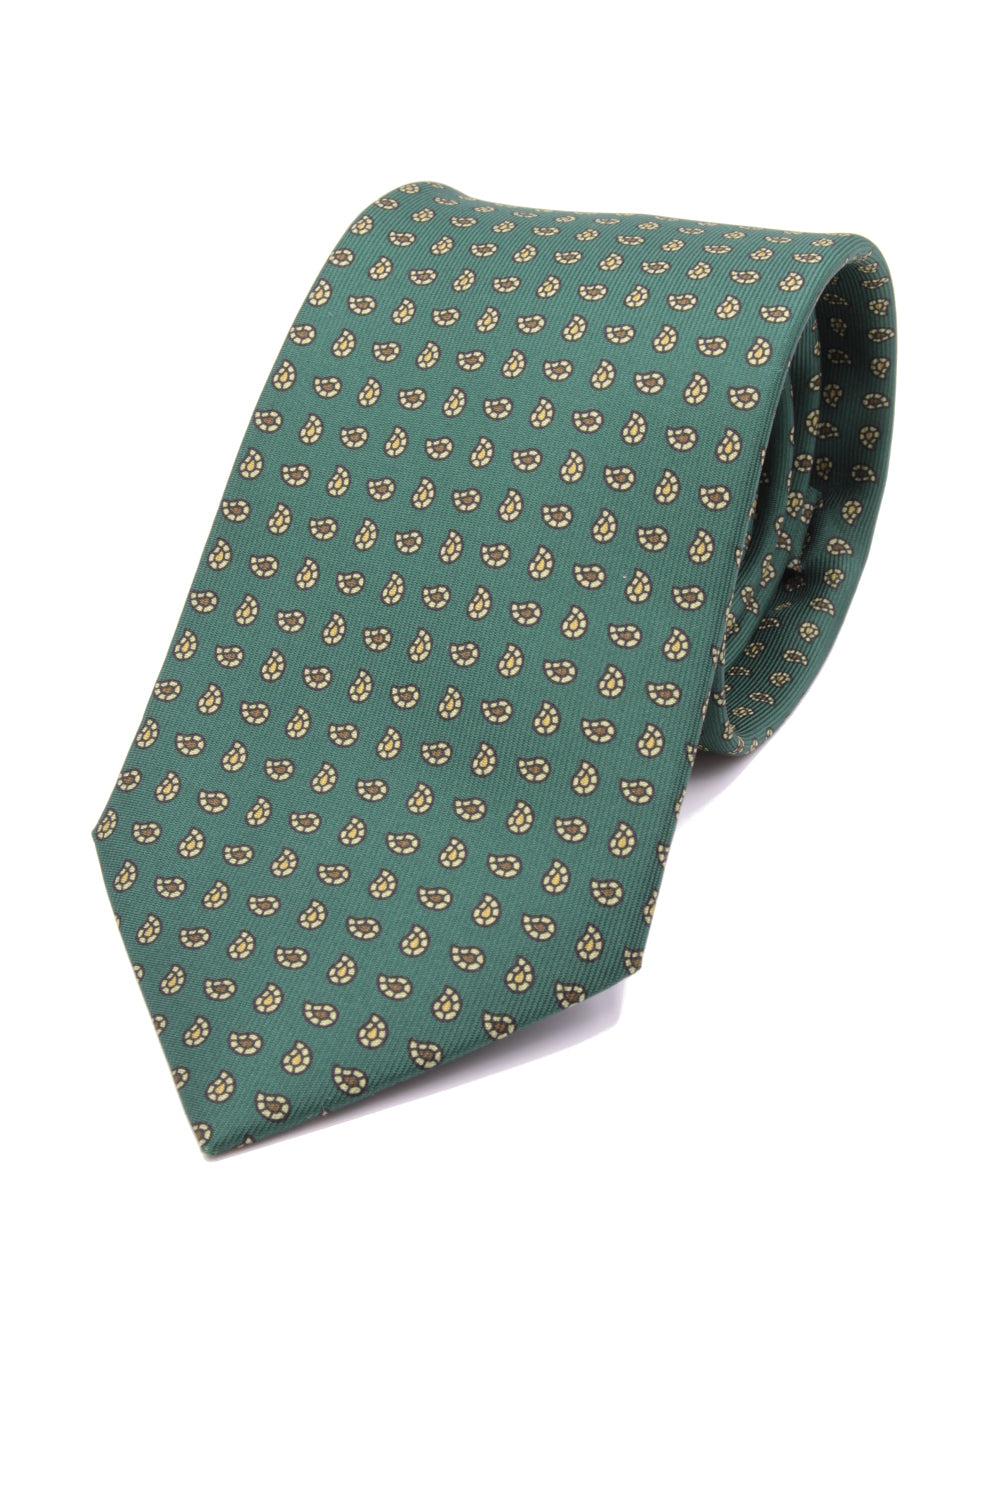 drake's Green, light yellow and brown print tie